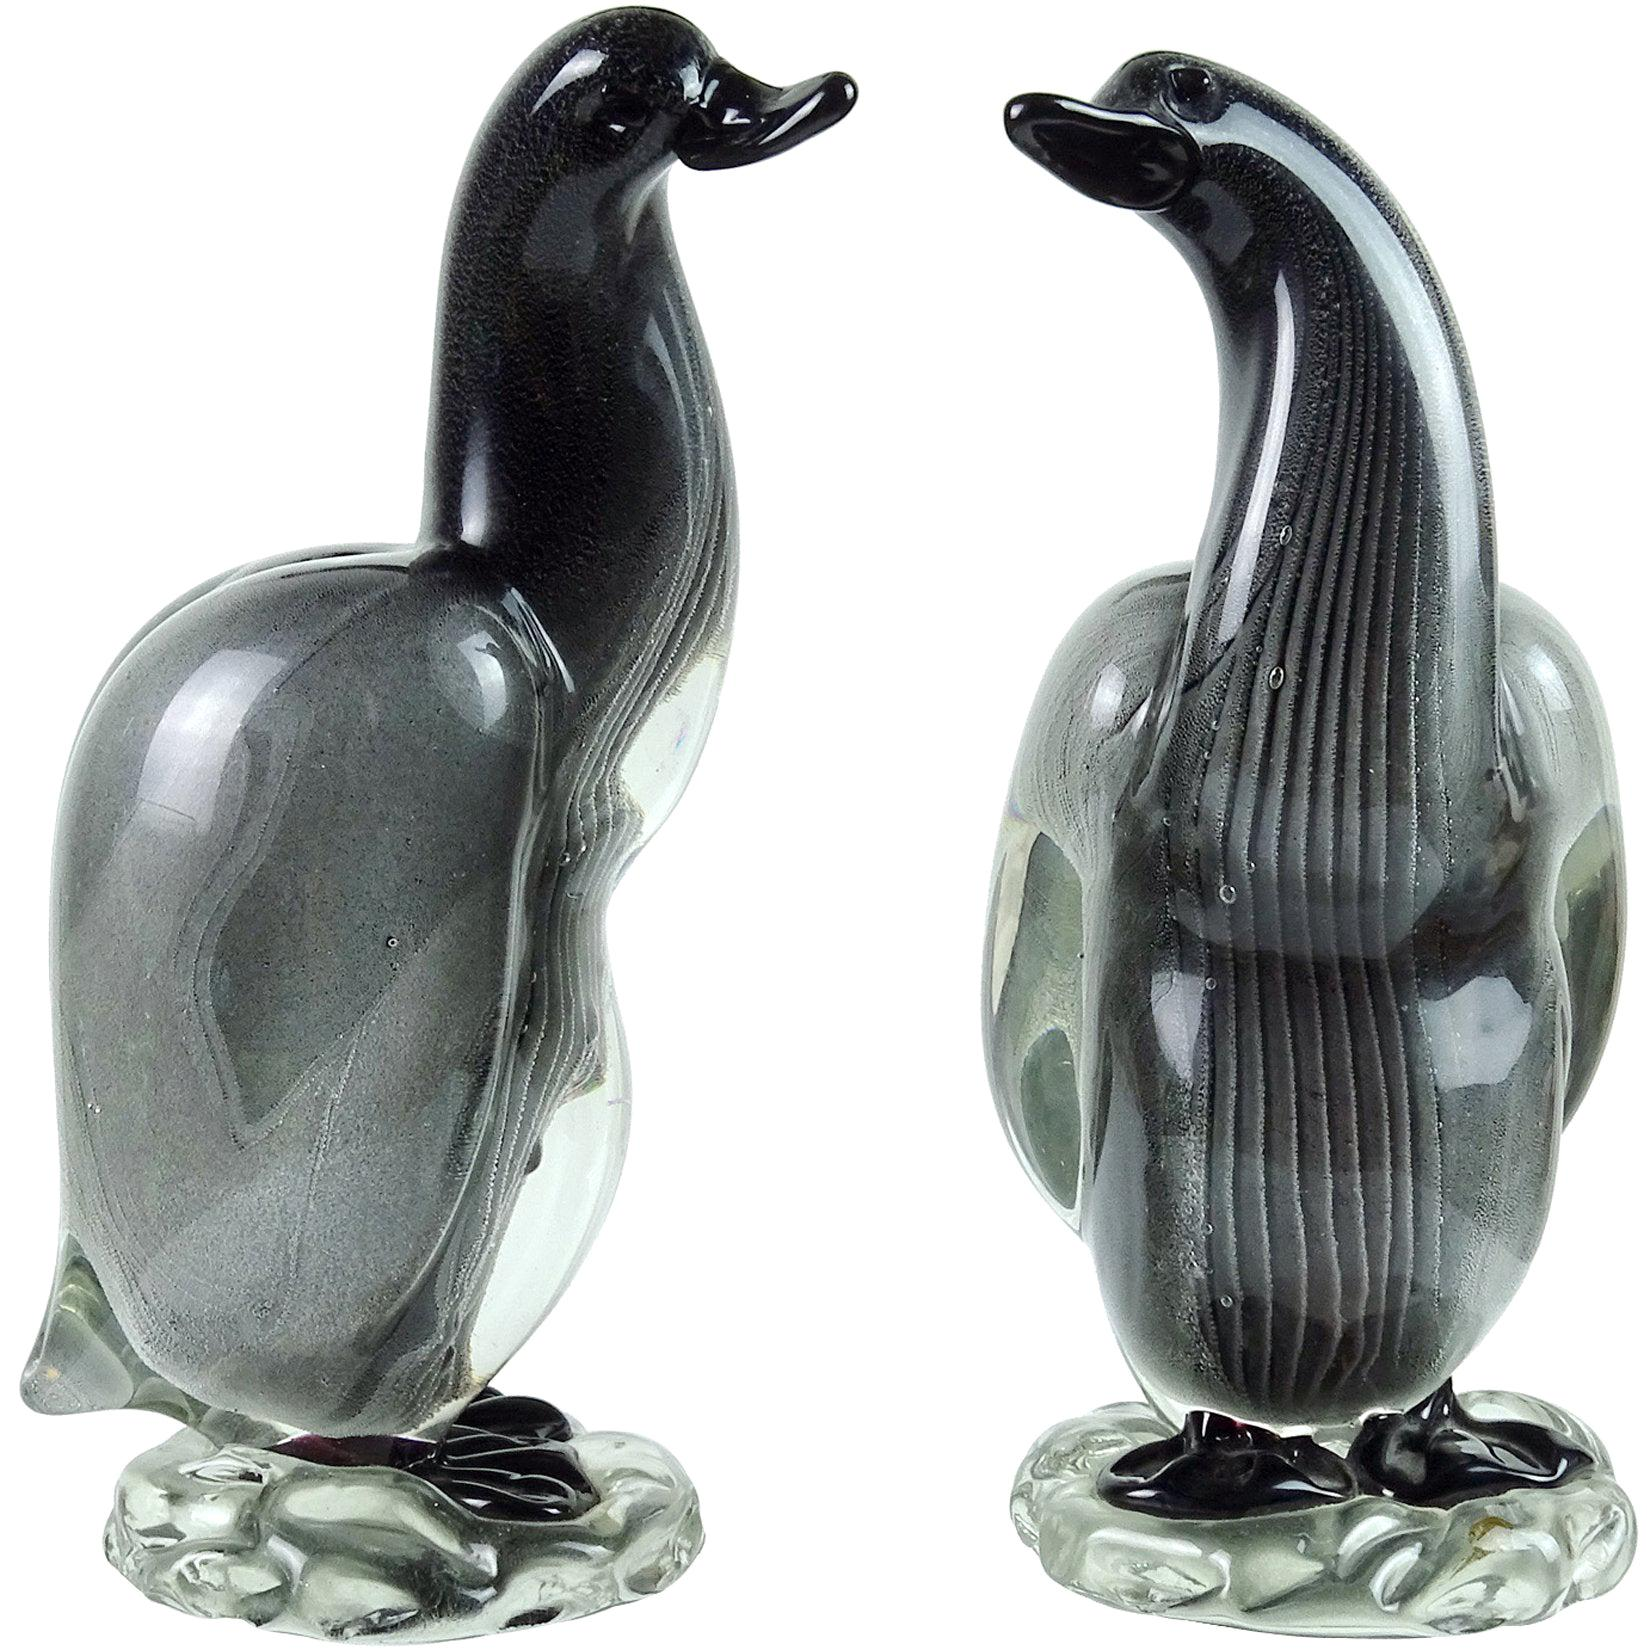 Alfredo Barbini Vamsa Murano Black Sfumato Italian Art Glass Bird Sculptures